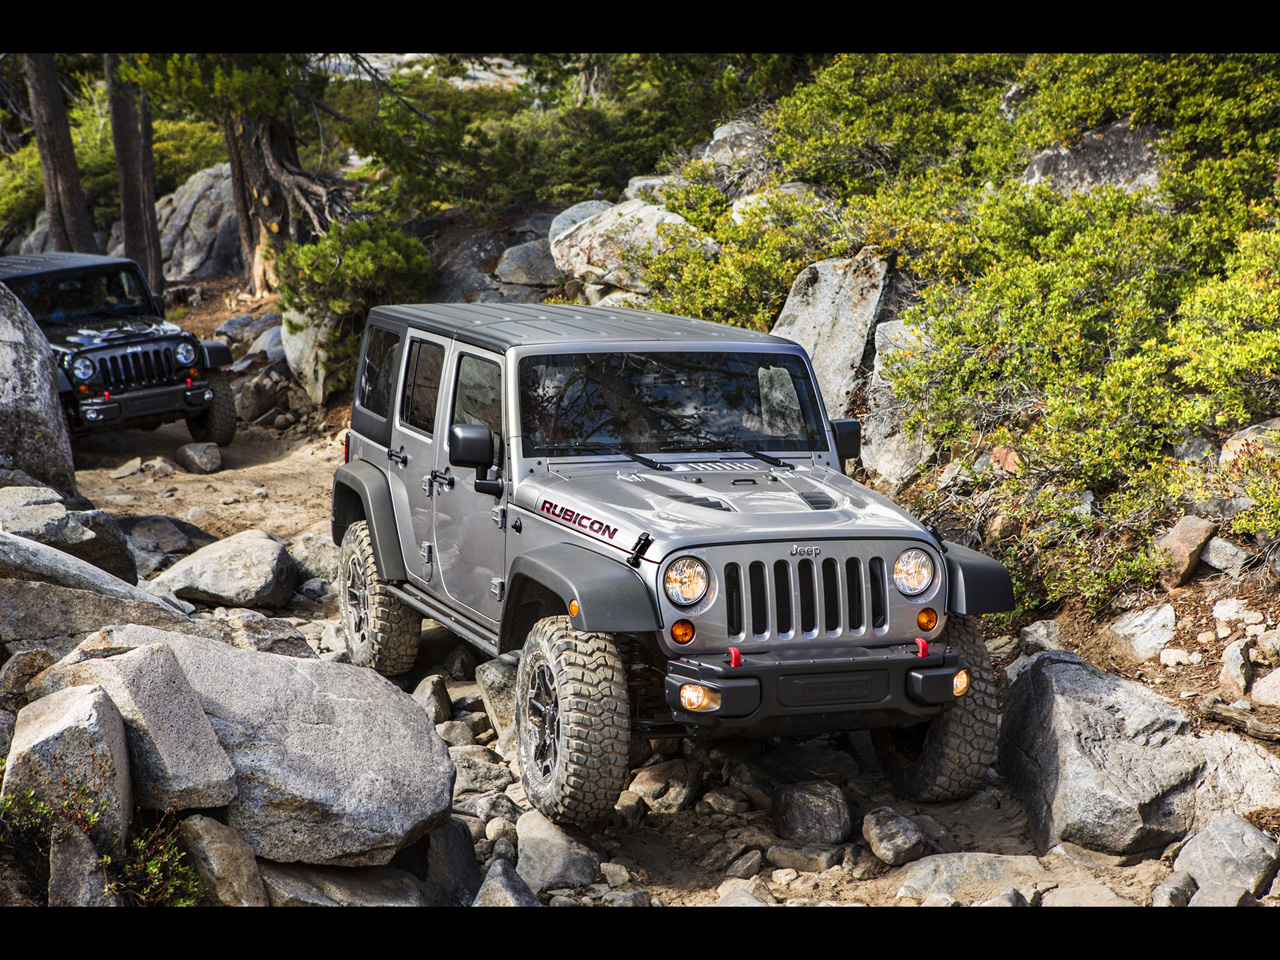 2013 Jeep Wrangler Unlimited Rubicon 10th Anniversary Edition Static 15  630x472 2013 Jeep Wrangler Unlimited Rubicon